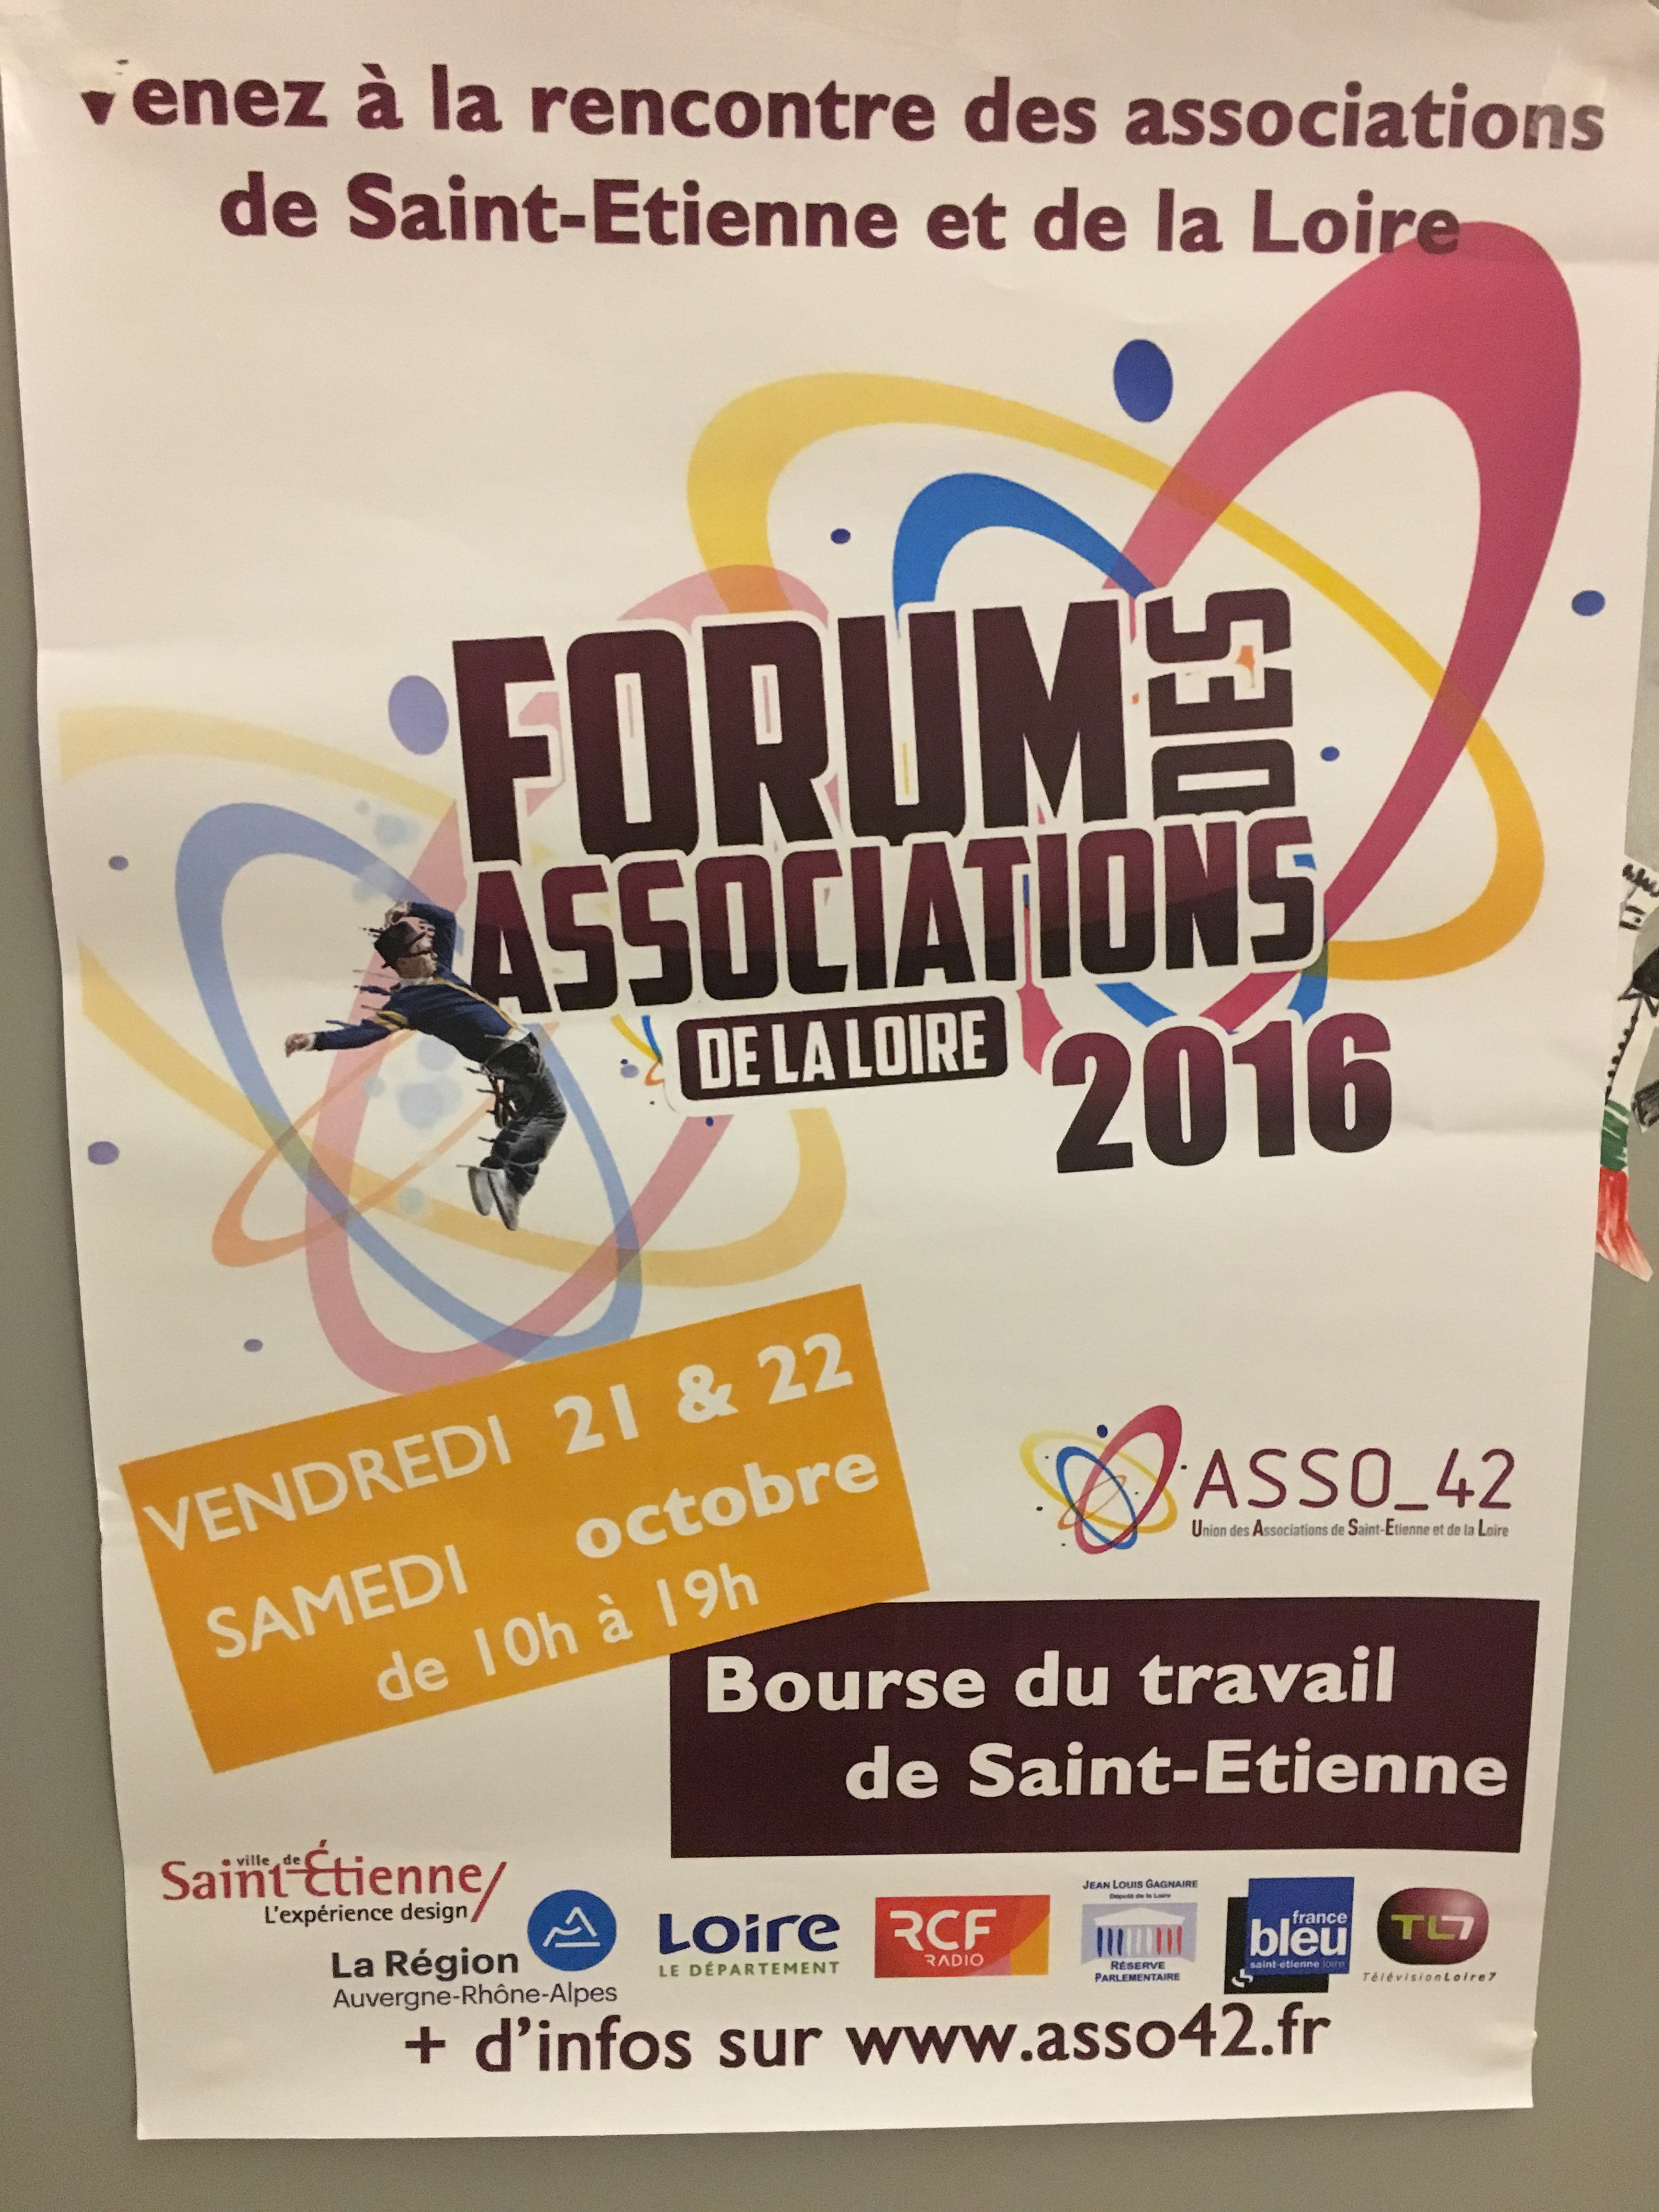 Affiche du forum des associations de la Loire 2016.